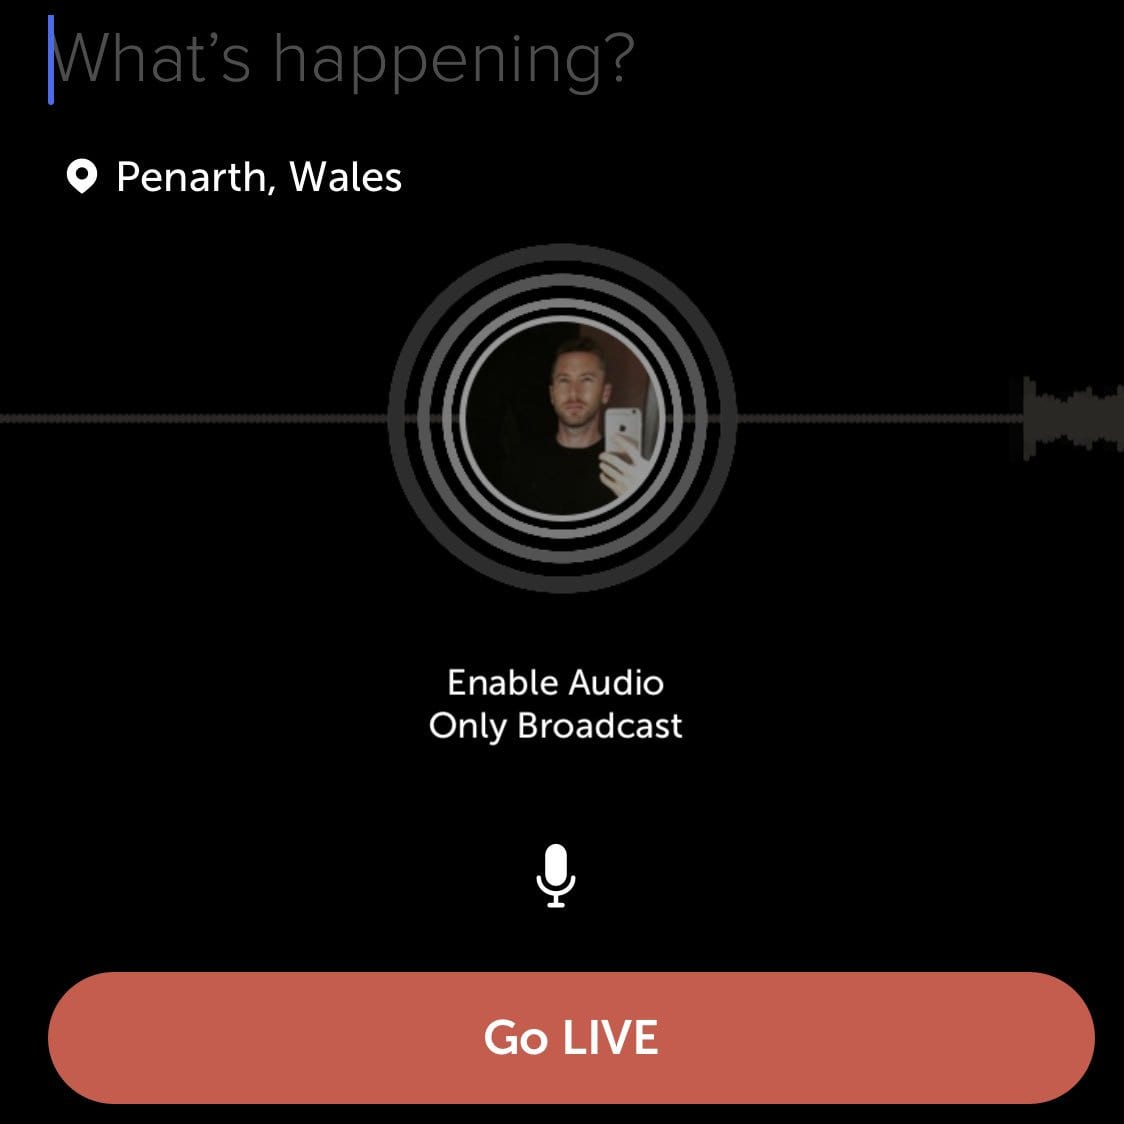 audio-only live broadcasts